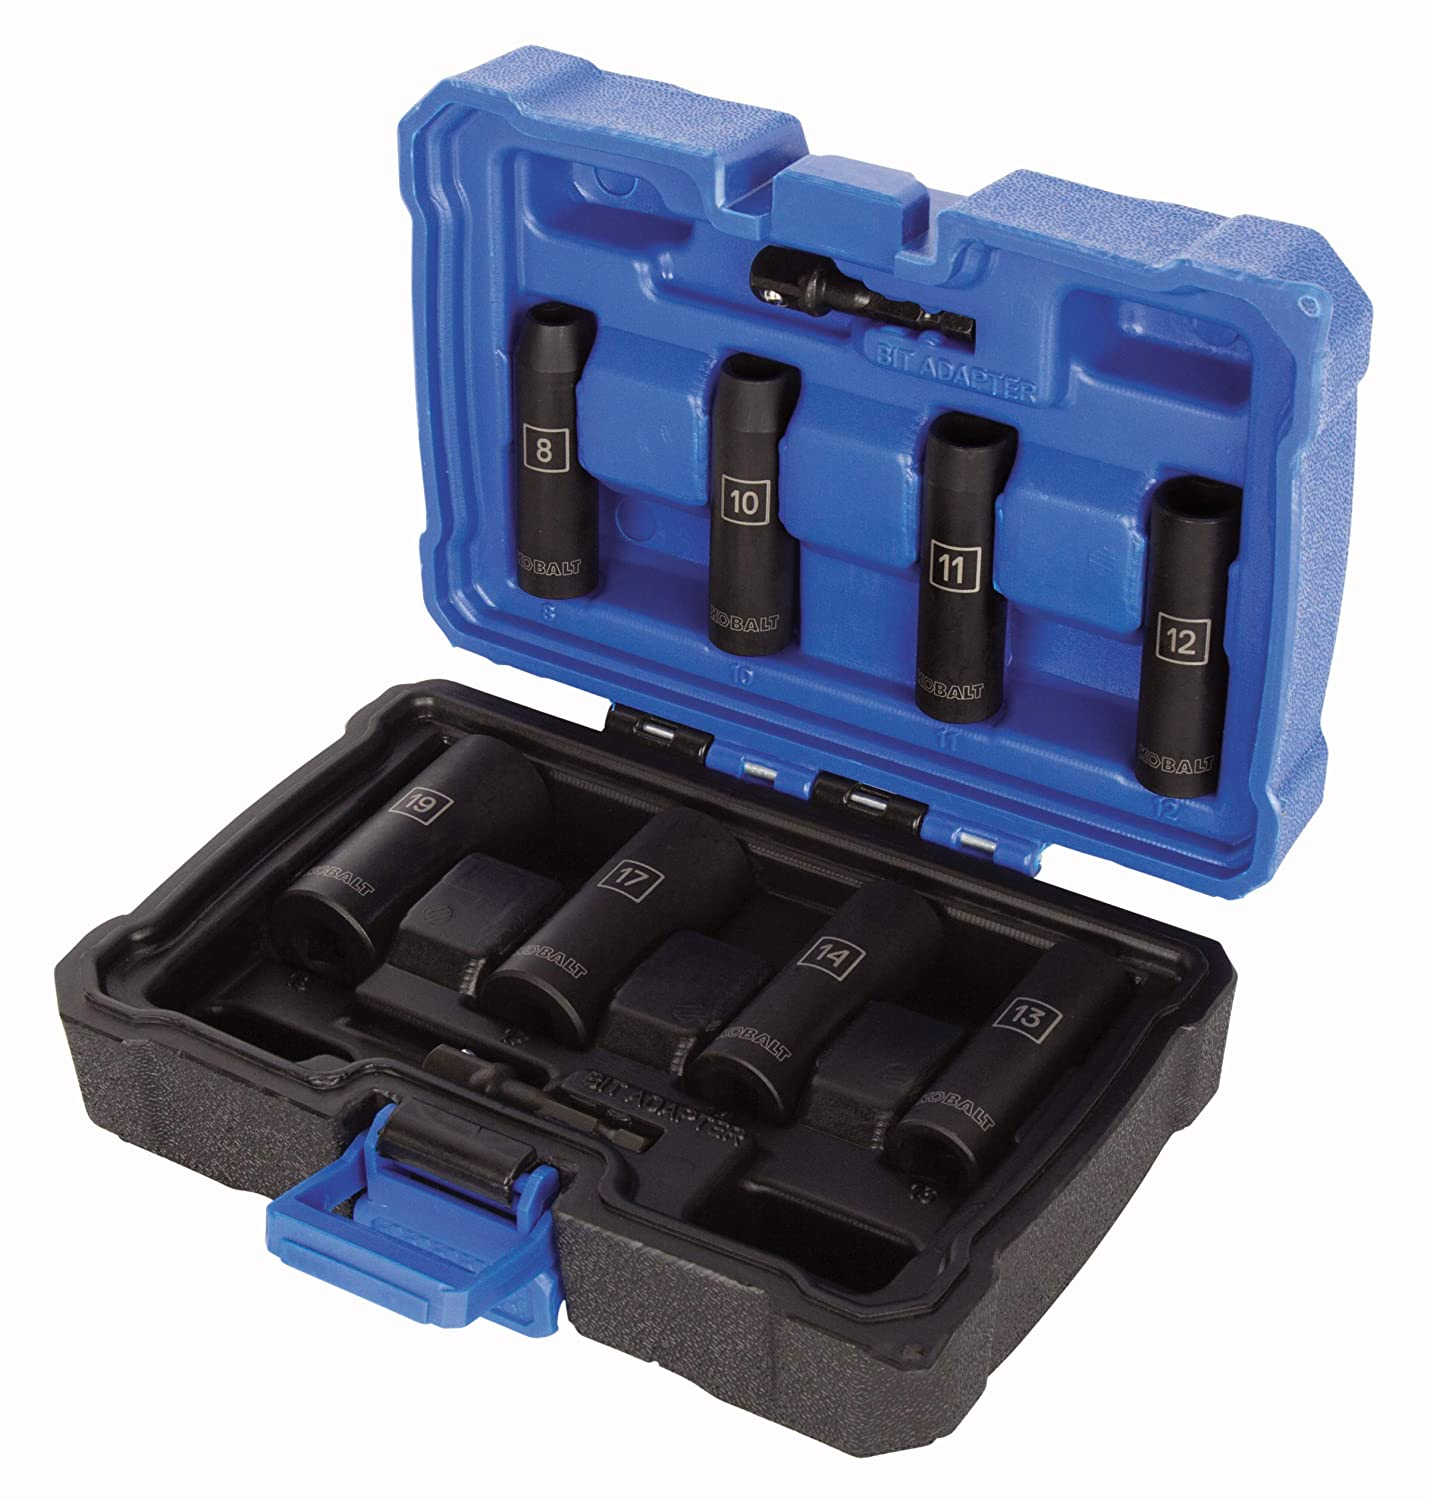 14 11 and 19-mm Sockets 17 12 Metric includes 8 10 13 Kobalt 864581 10-Piece 3//8-Inch Drive 6-Point Deep Impact Socket Set